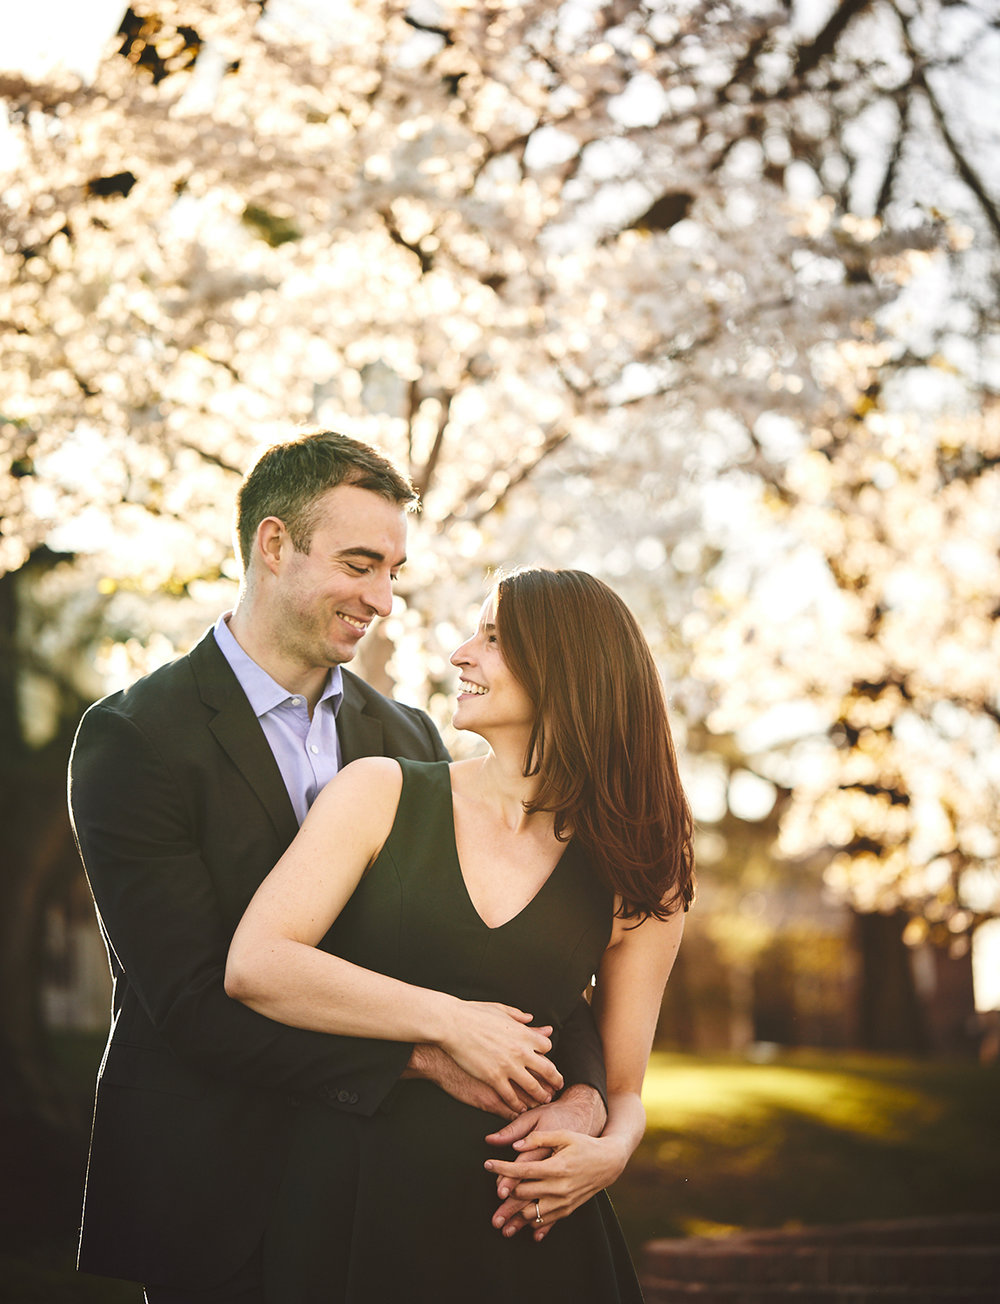 180422_StevensInstitureofTechnologyEngagementPhotography_HobokenEngagement Photography_By_BriJohnsonWeddings_0022.jpg